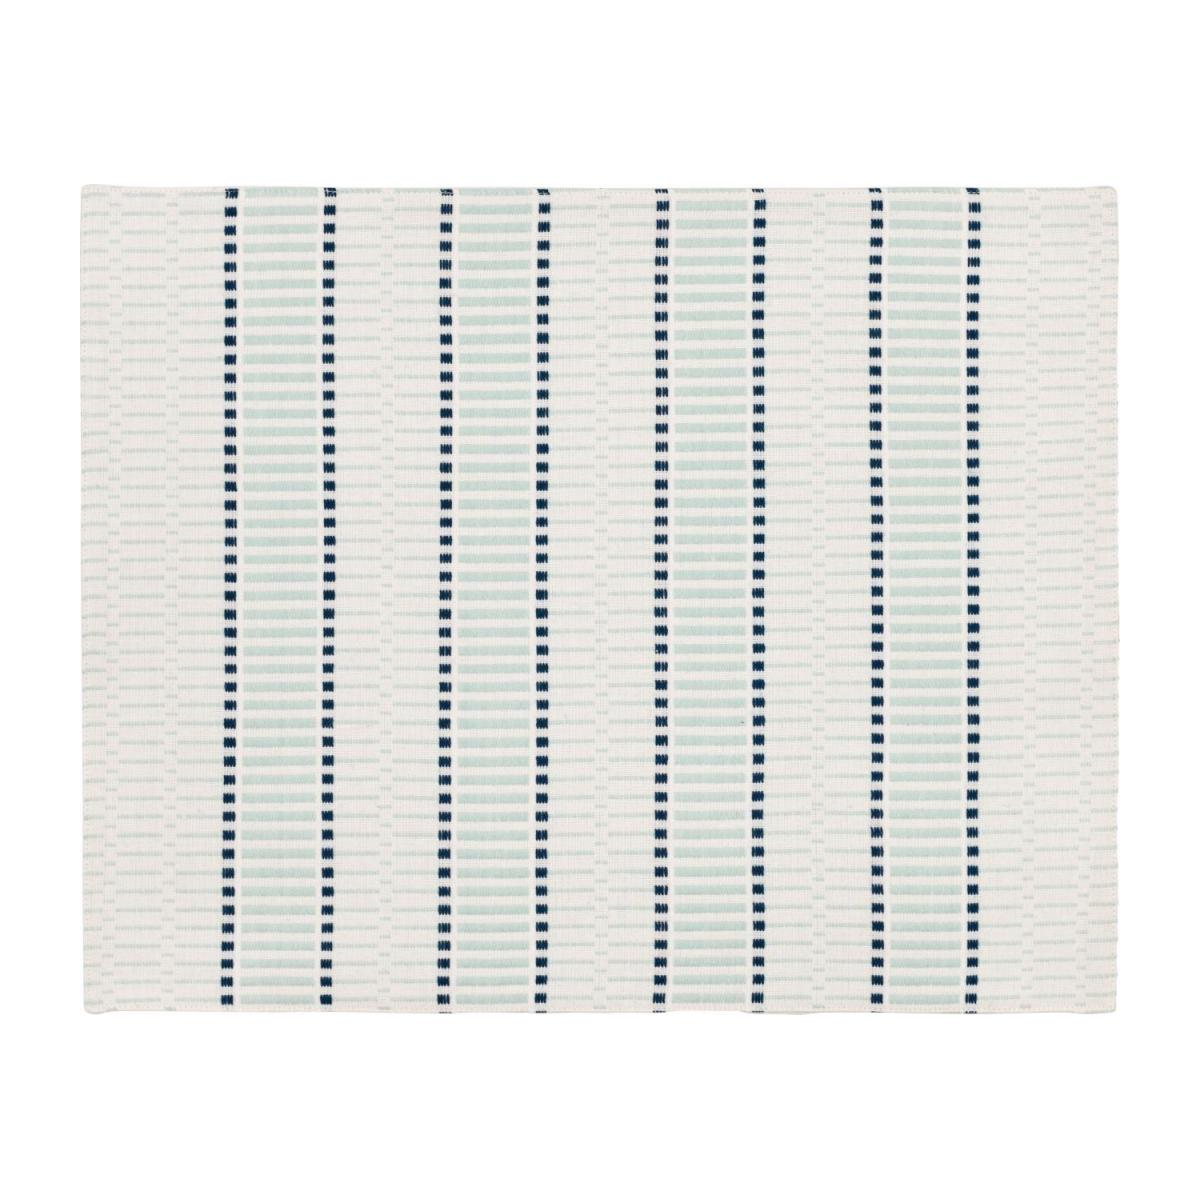 Set of 2 Celadon Patterned Placemats n°1